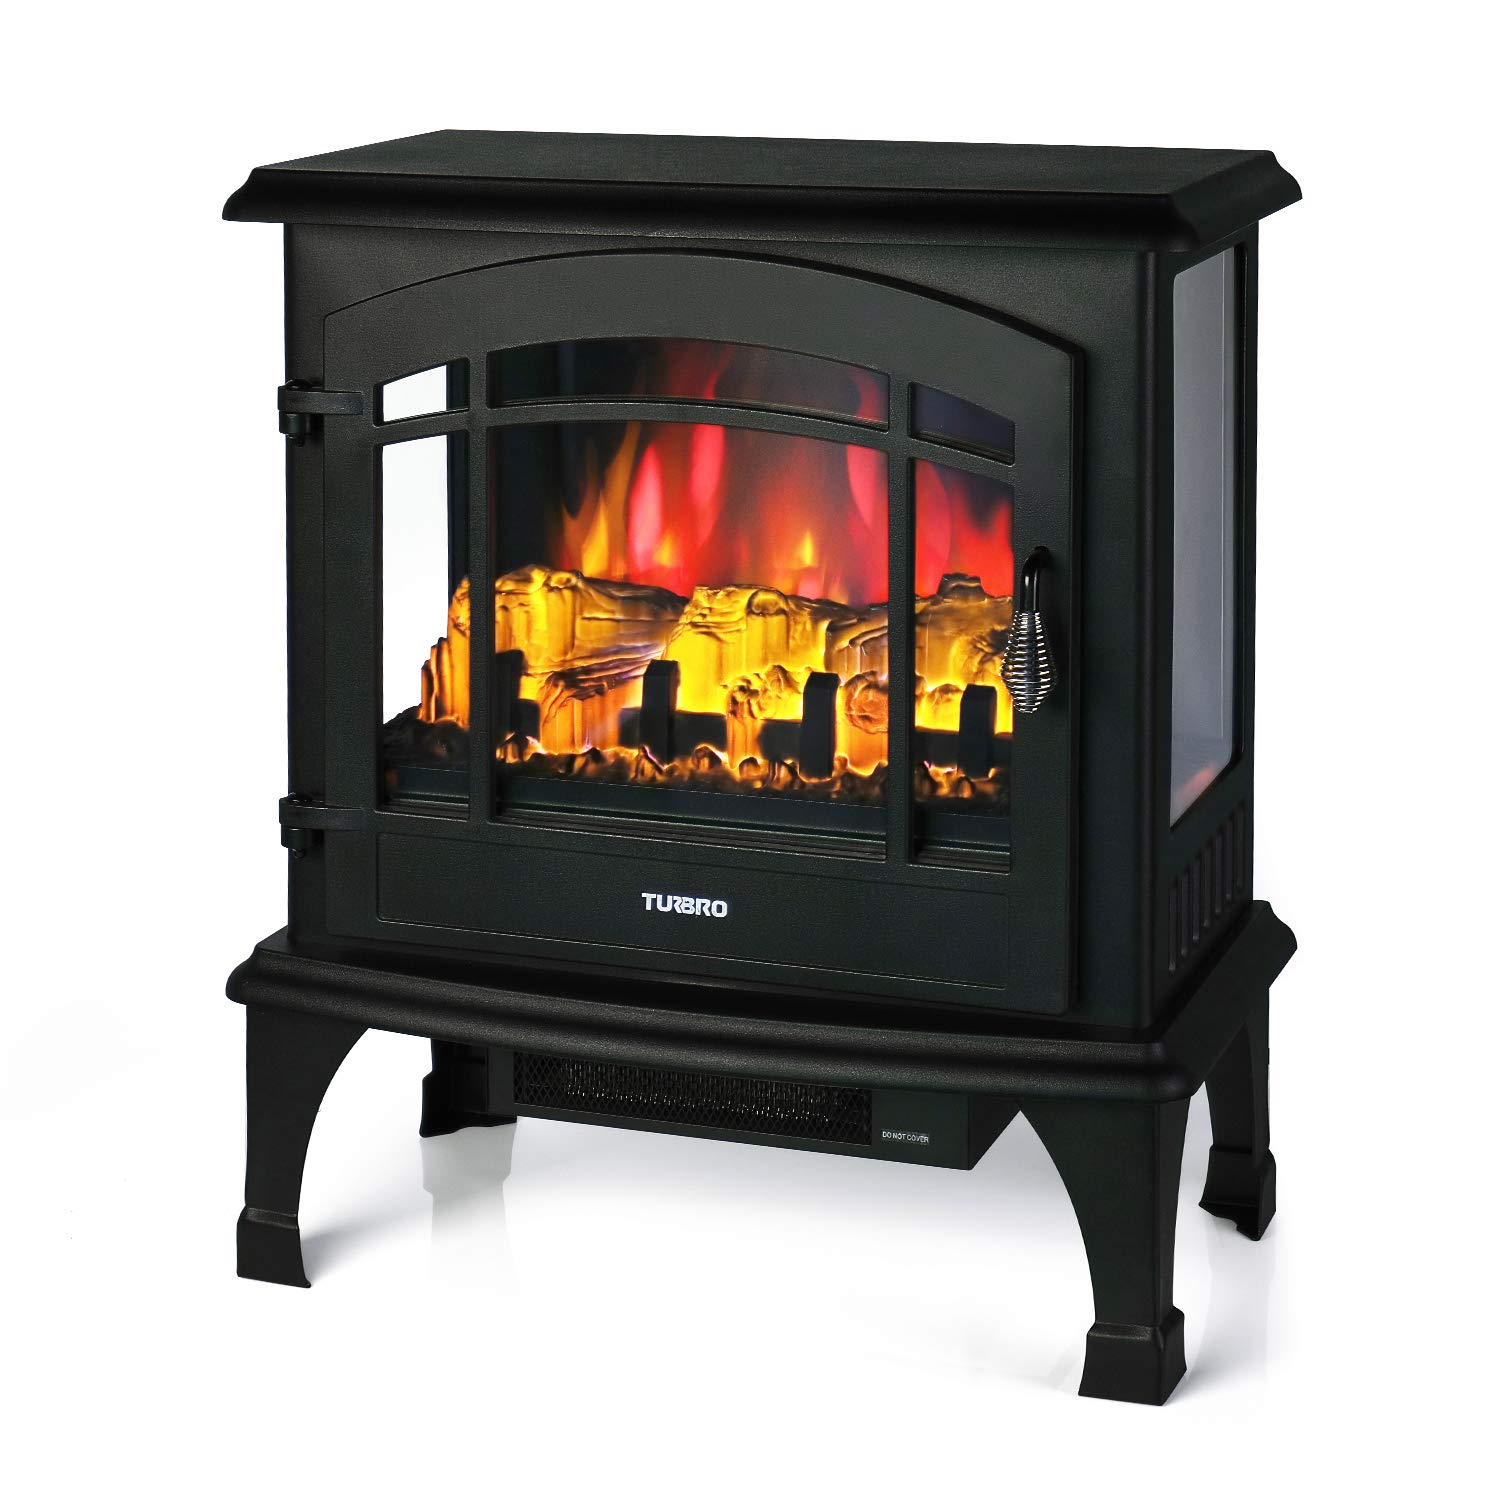 TURBRO Suburbs TS23 Electric Fireplace Heater, Freestanding Fireplace Stove with Realistic Flame – Brightness Adjustable Effect – Remote Control – Timer – 23 1400W Black